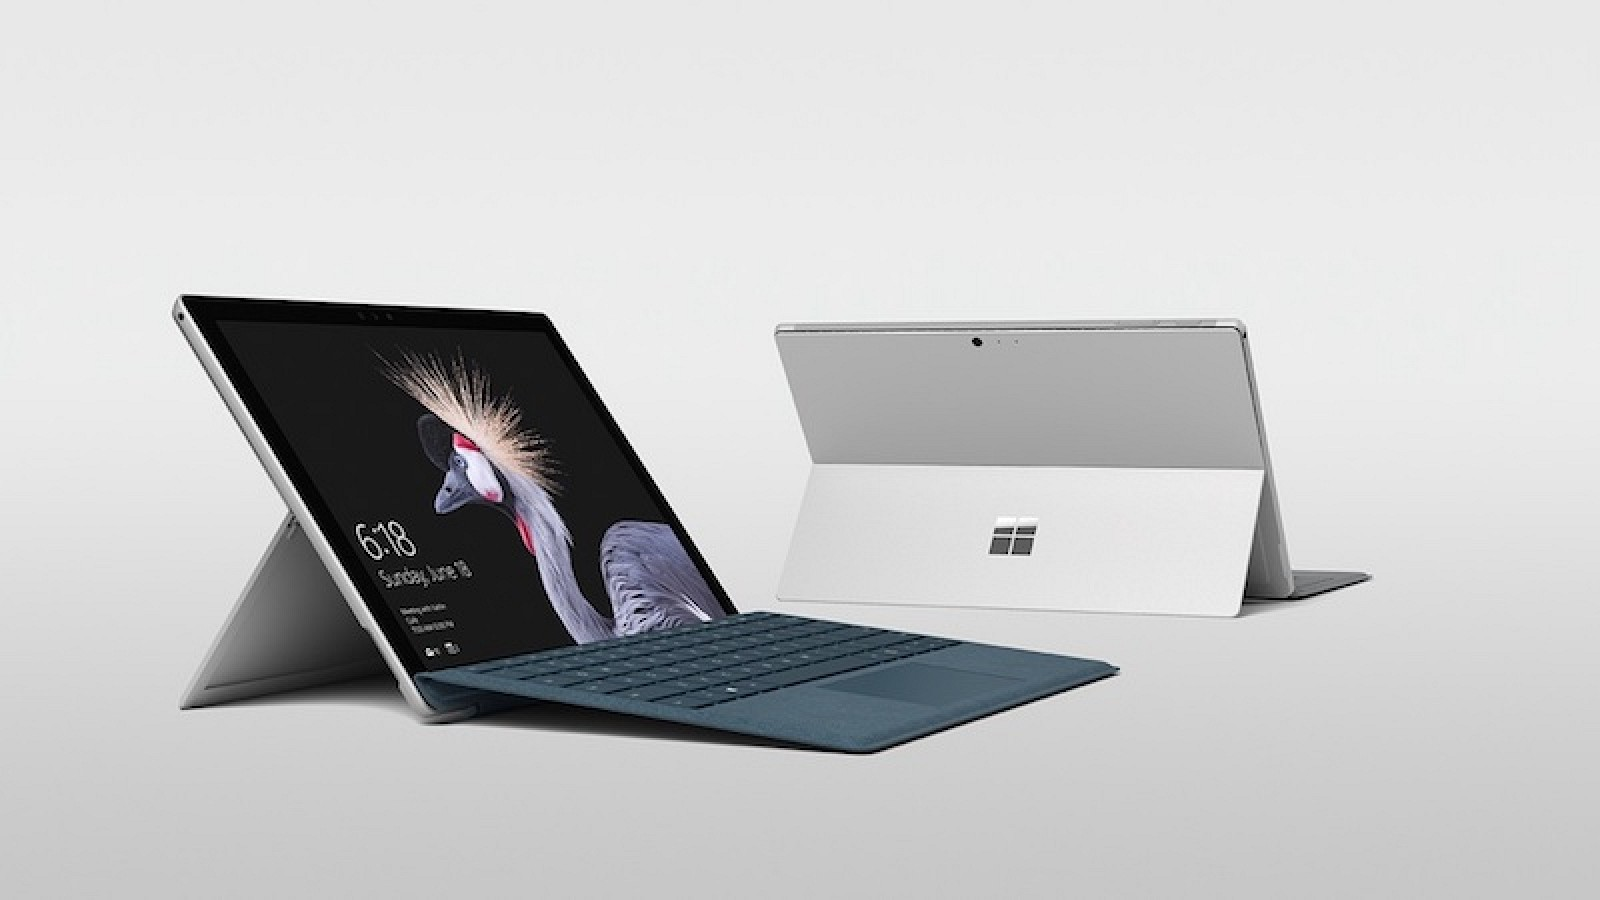 photo image Microsoft Planning Low-Cost Surface Line to Compete With Apple's $329 iPad